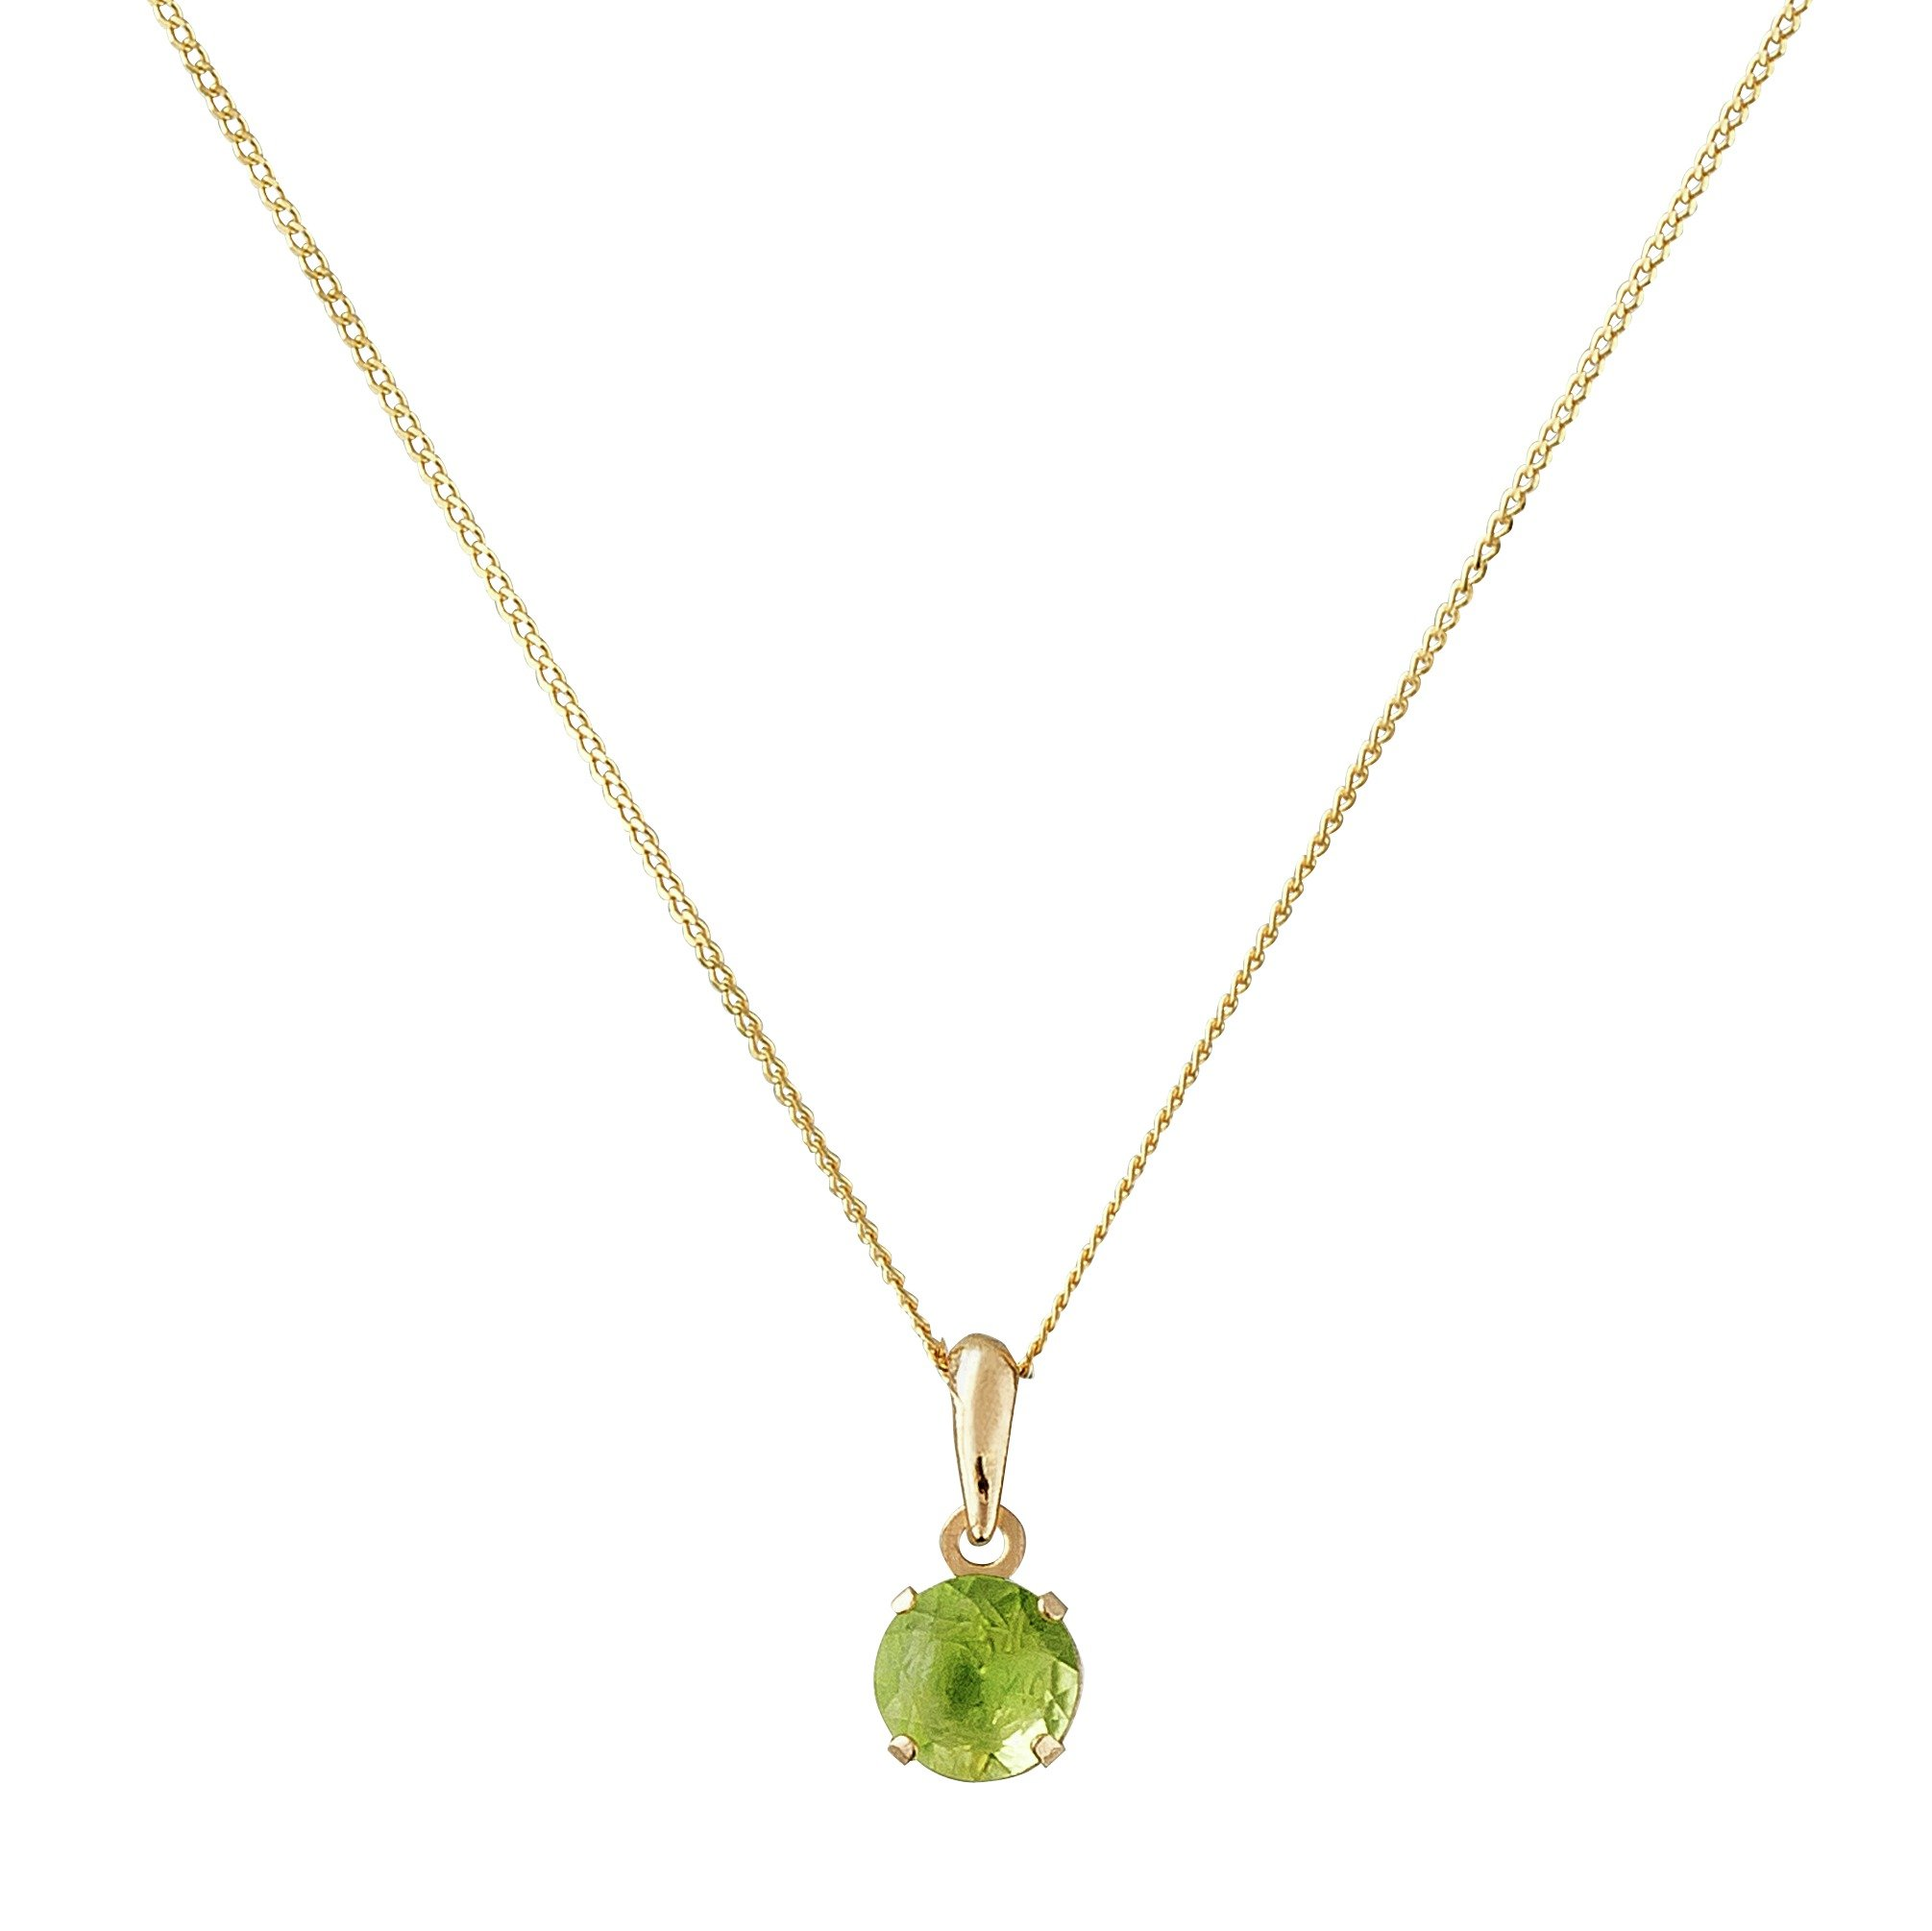 Image of Revere 9ct Gold 5mm Peridot Pendant - August